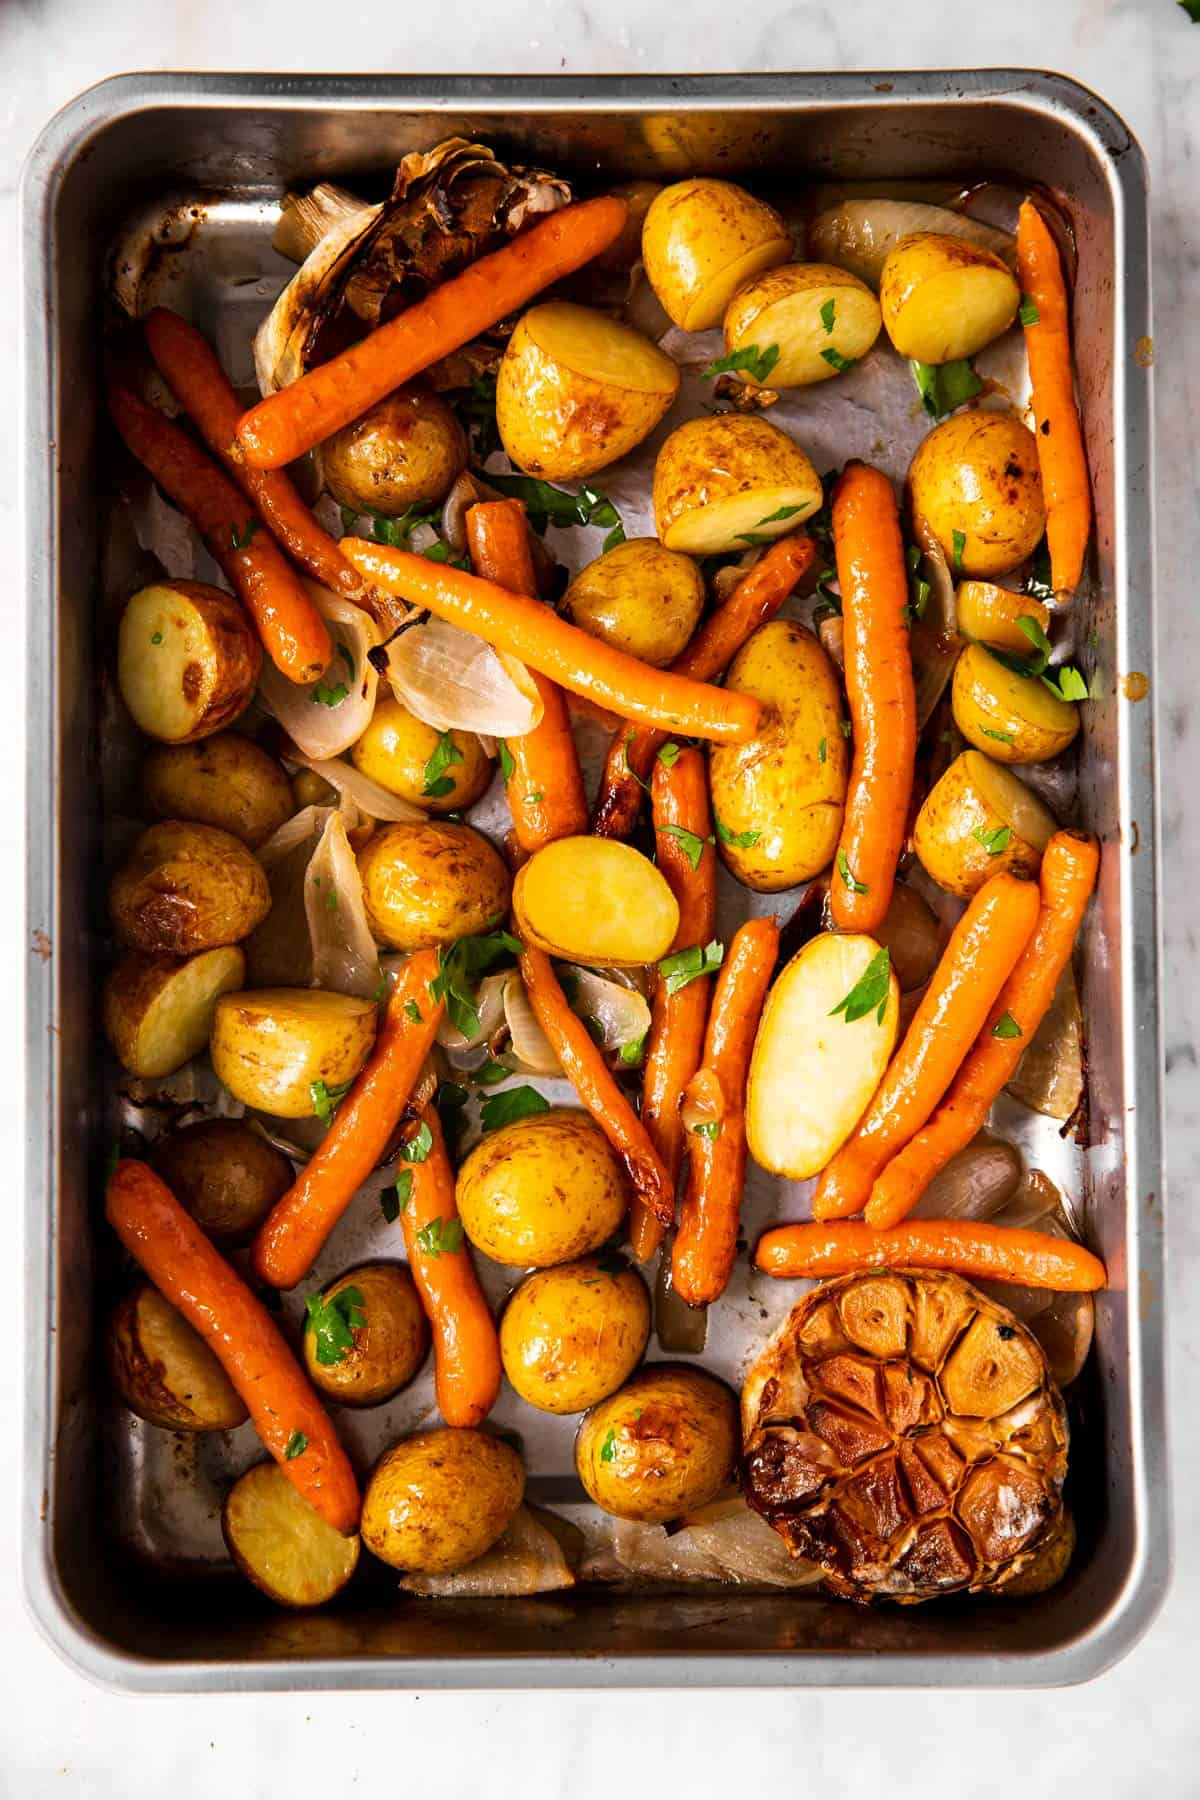 roasted carrots and potatoes in roasting pan